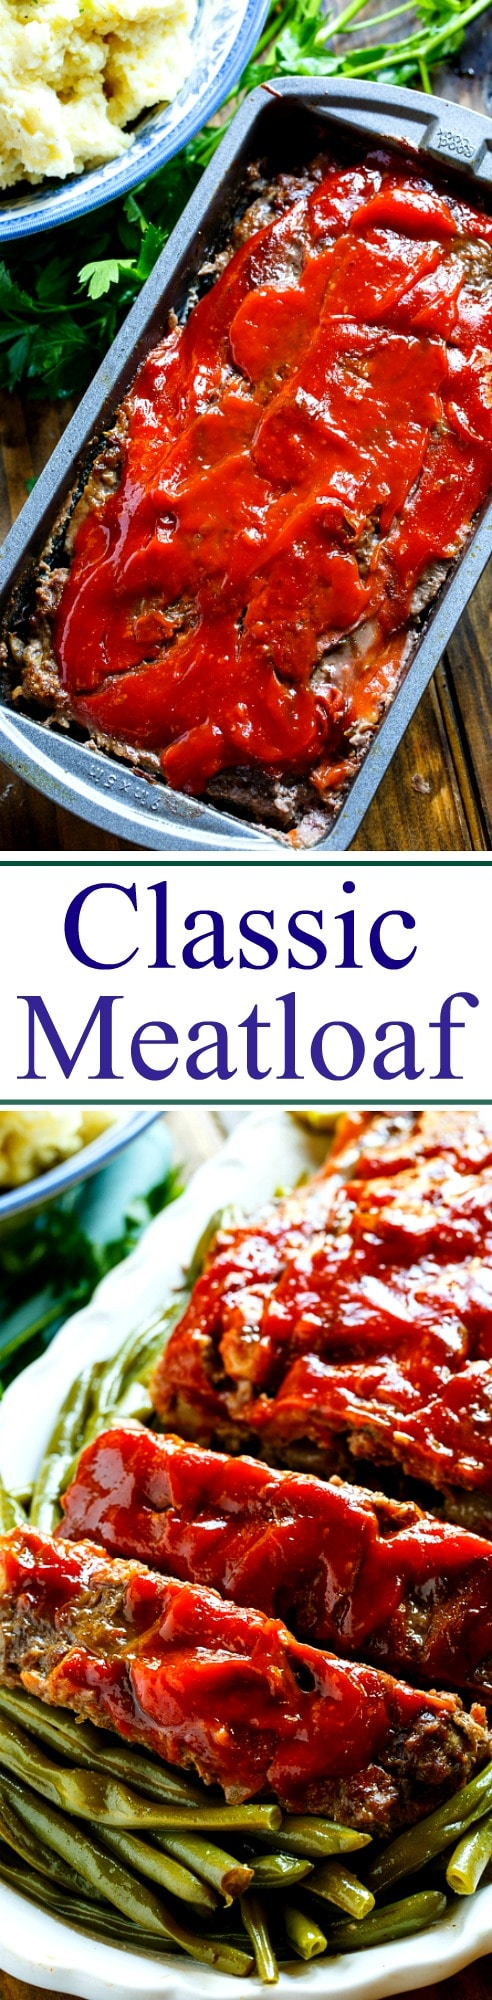 Classic Meatloaf with a Brown Sugar Glaze